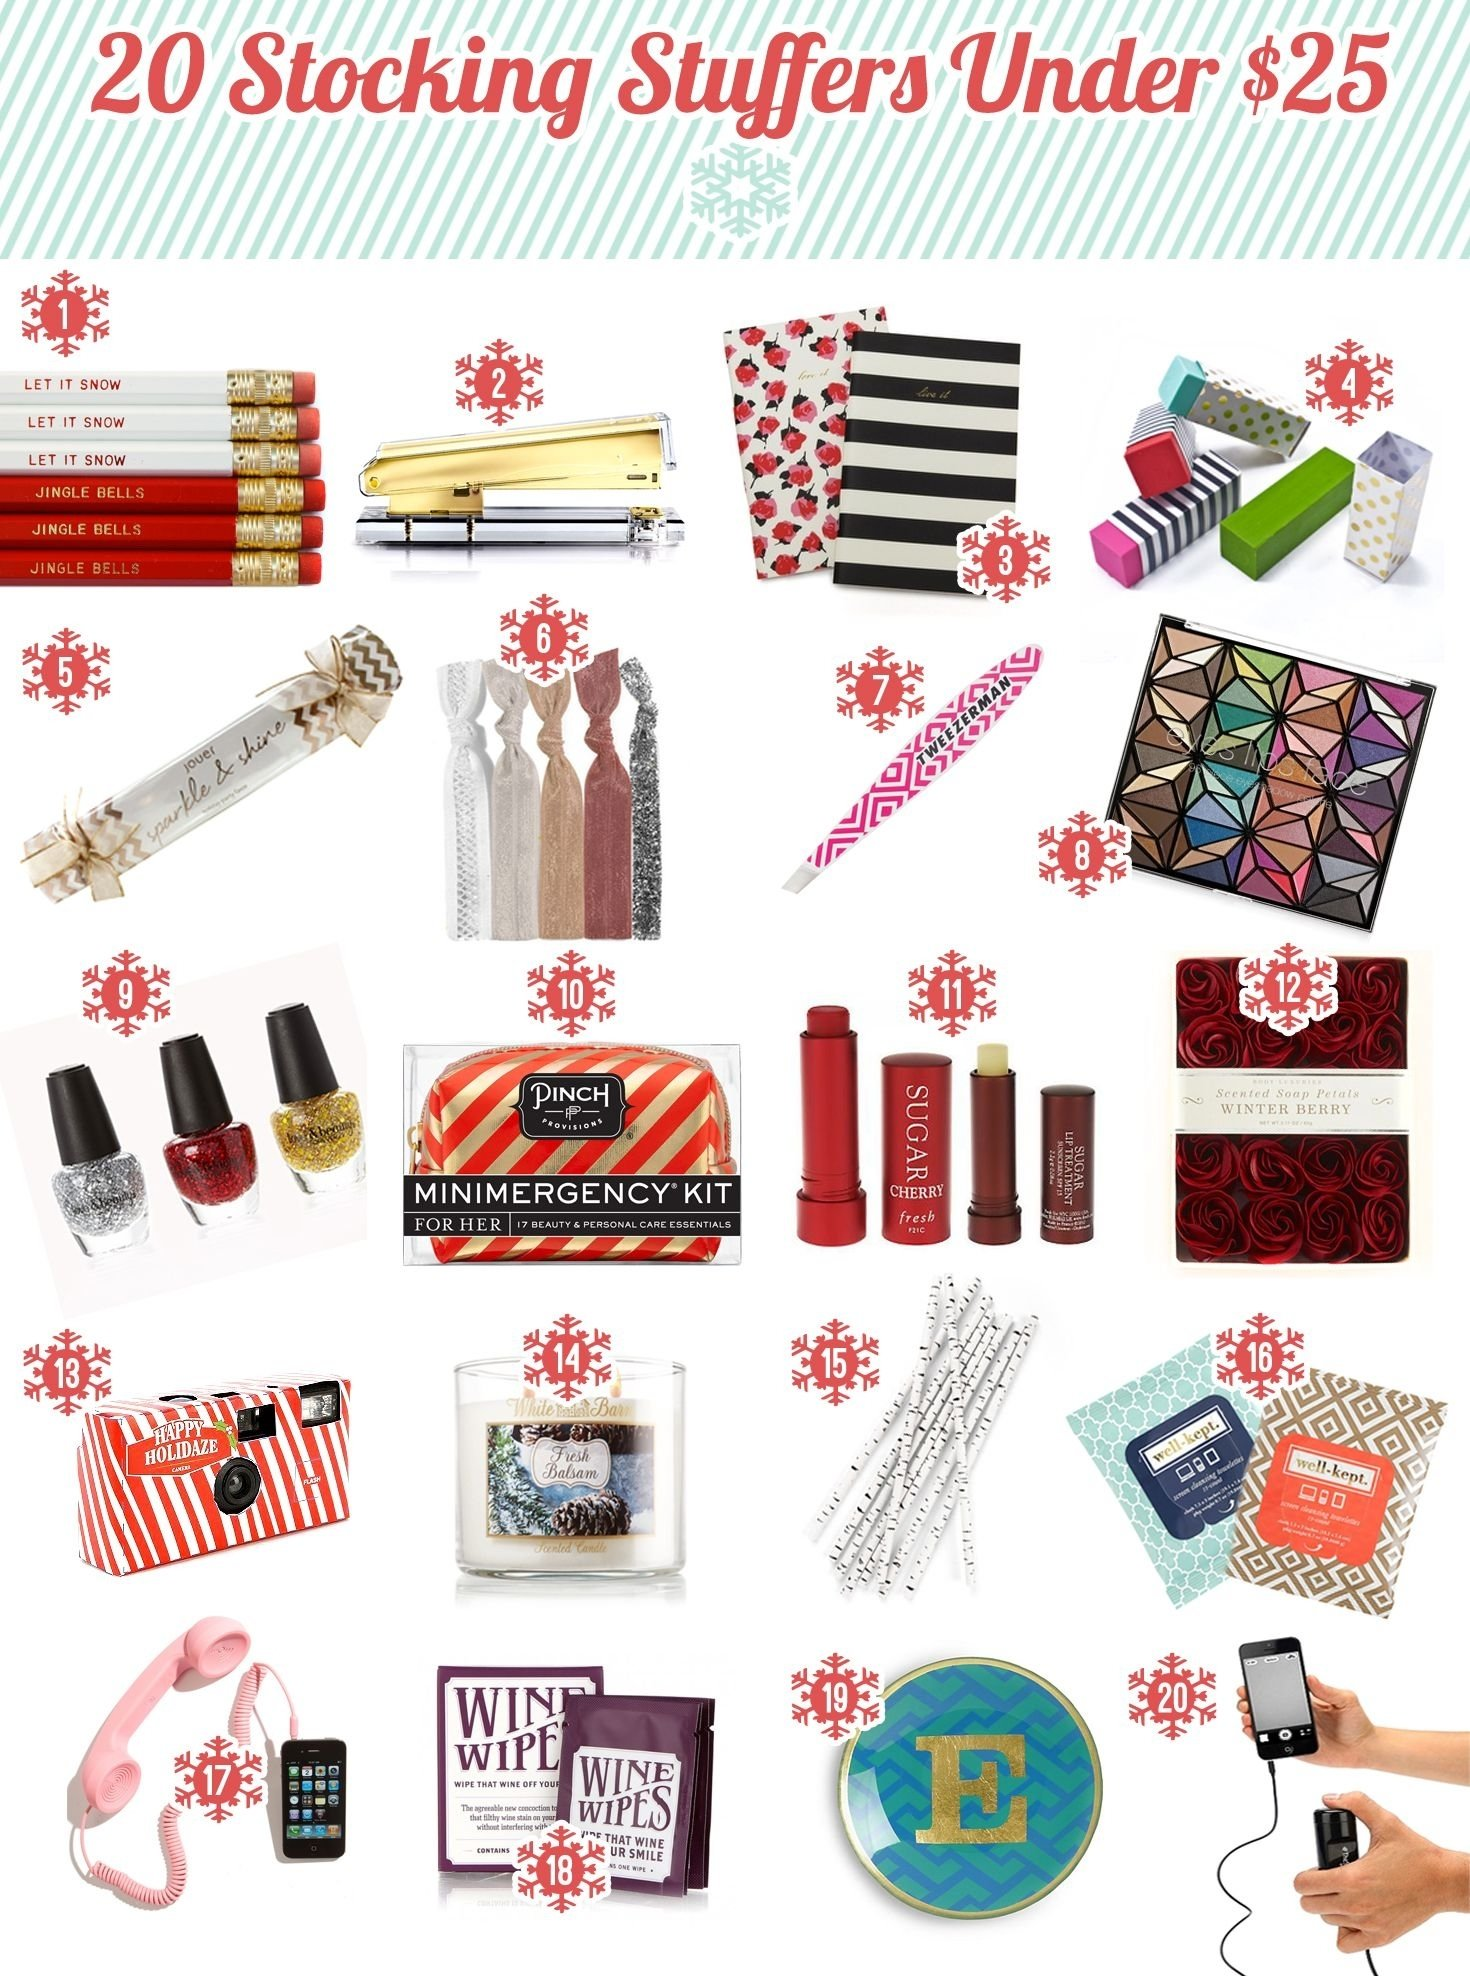 2013 holiday gift guide: secret santa gift ideas under $25. most are